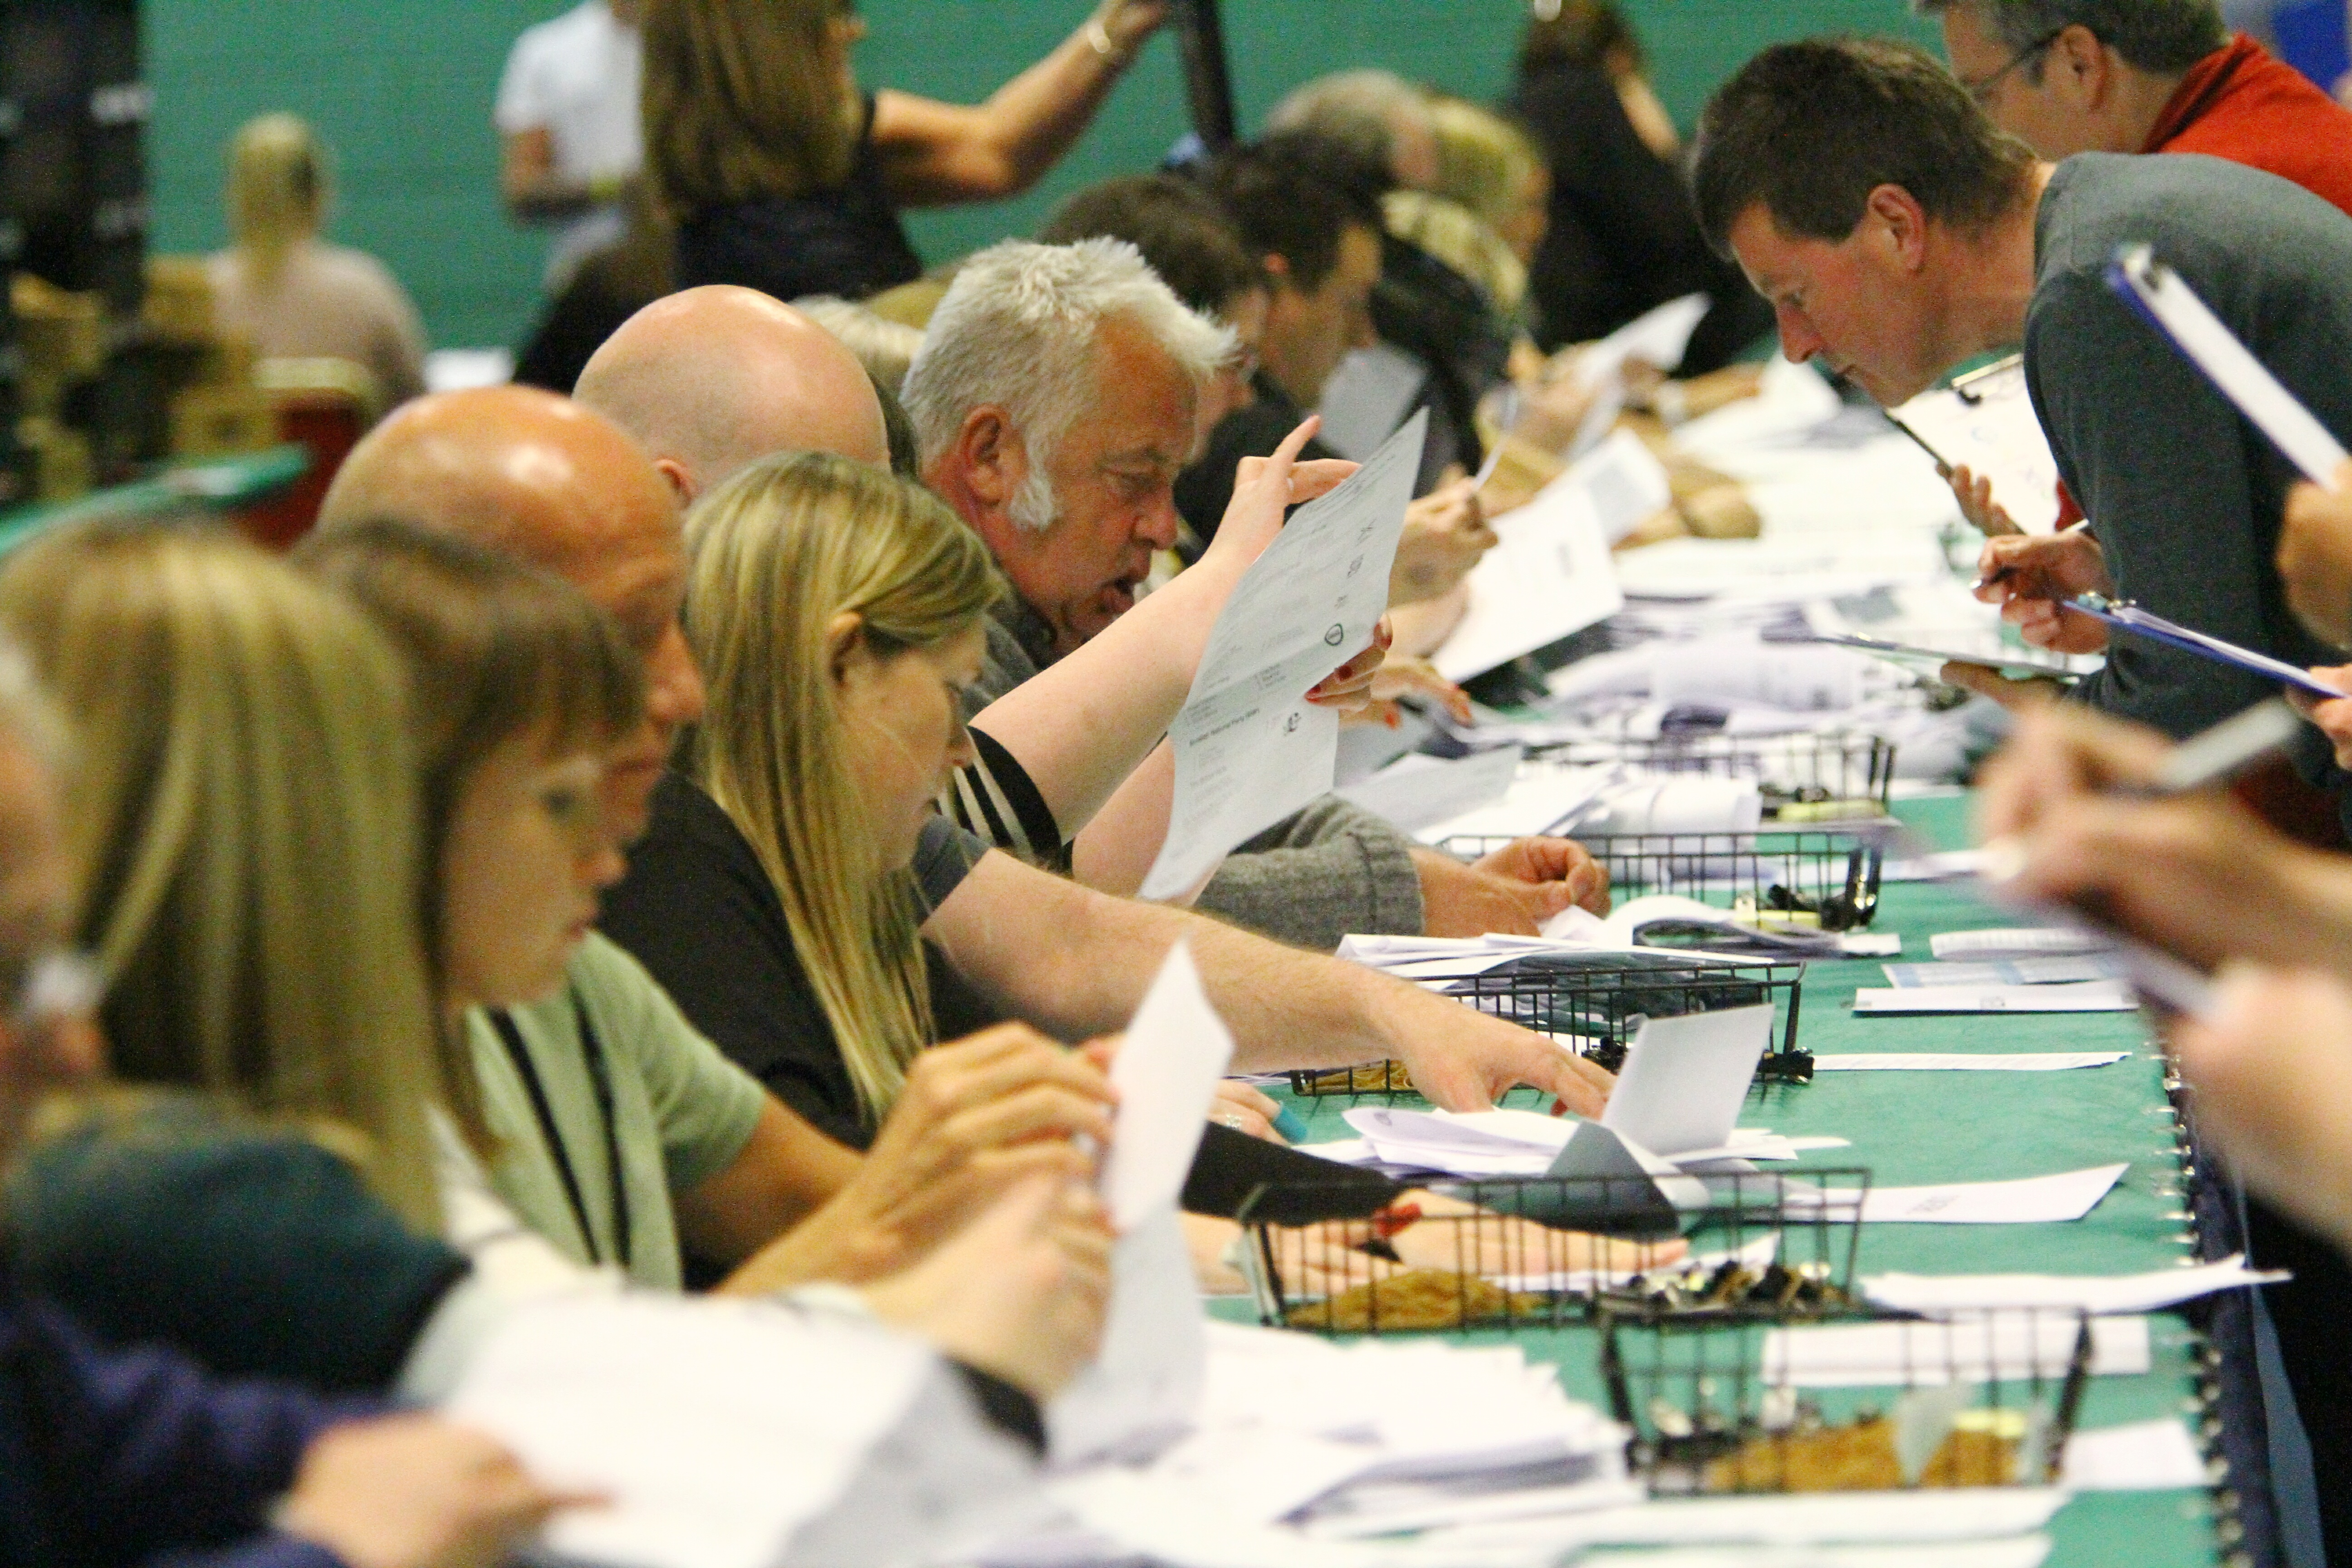 The European Election count underway at Fintry Primary School.